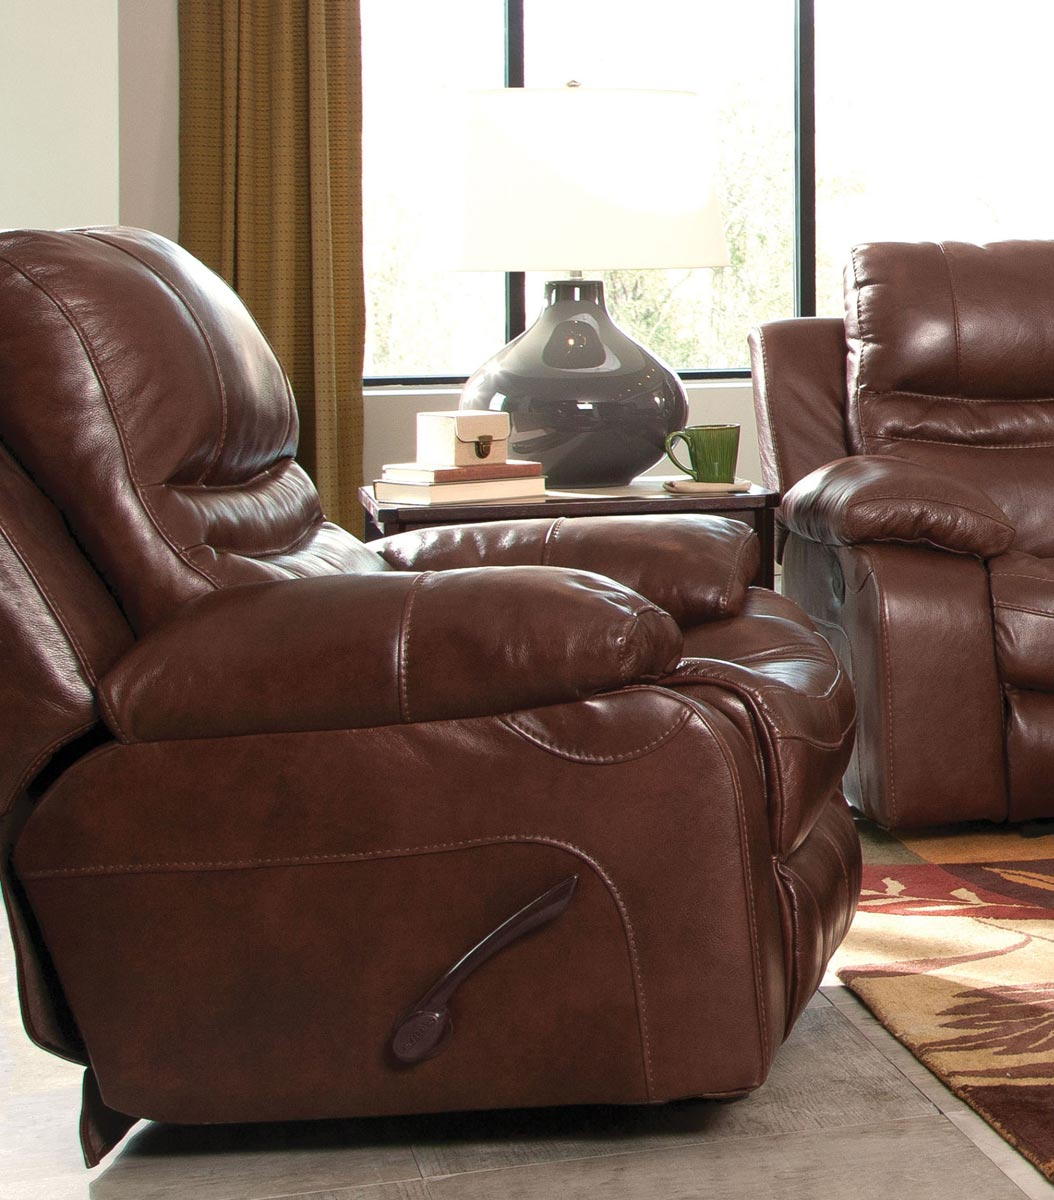 CatNapper Patton Top Grain Italian Leather Glider Recliner - Walnut